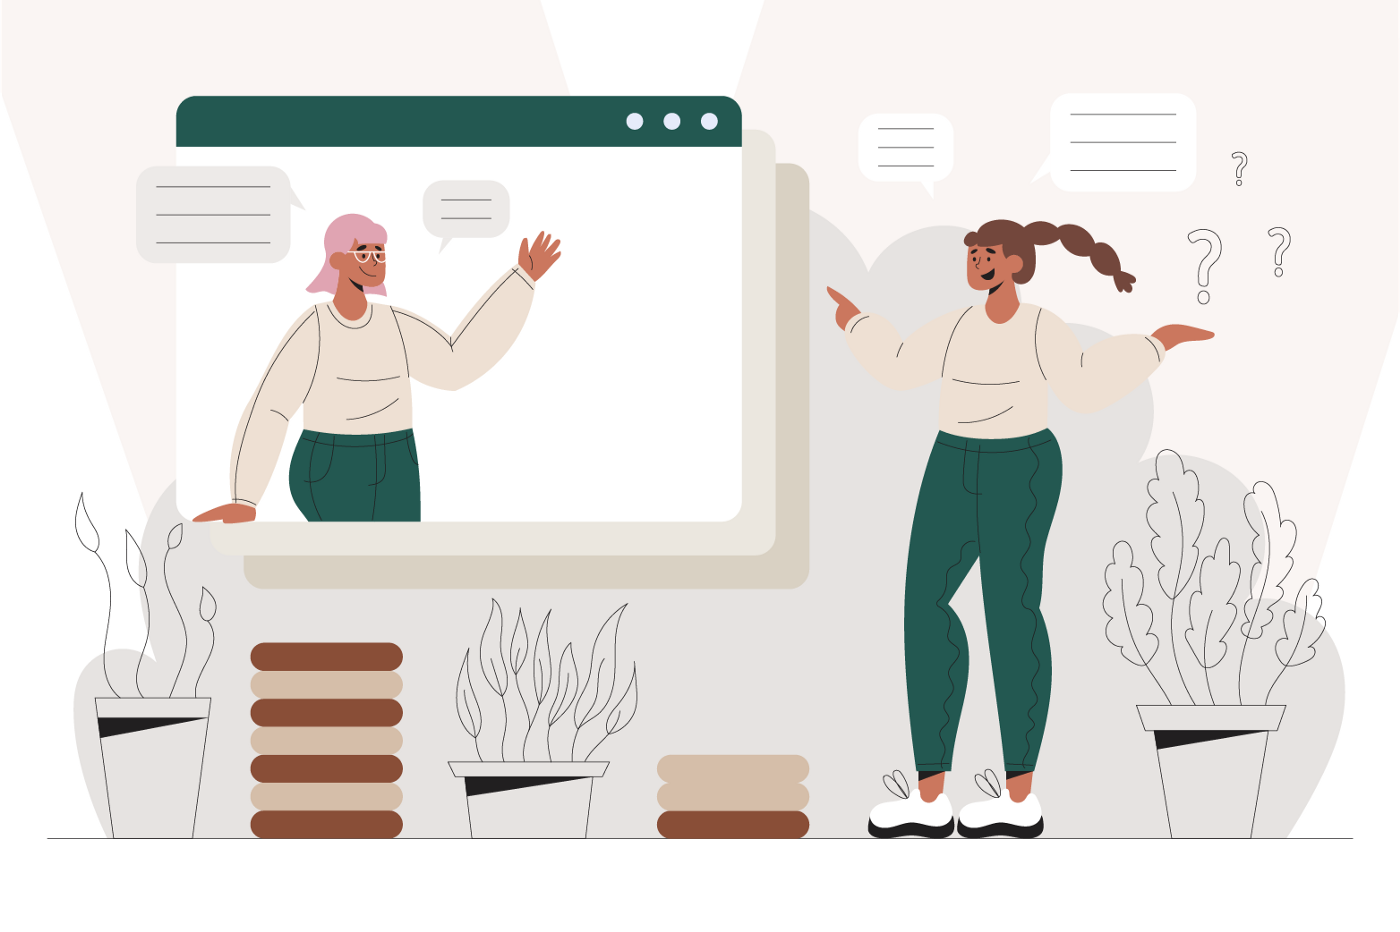 Graphic for a woman asking questions to another woman on the screen